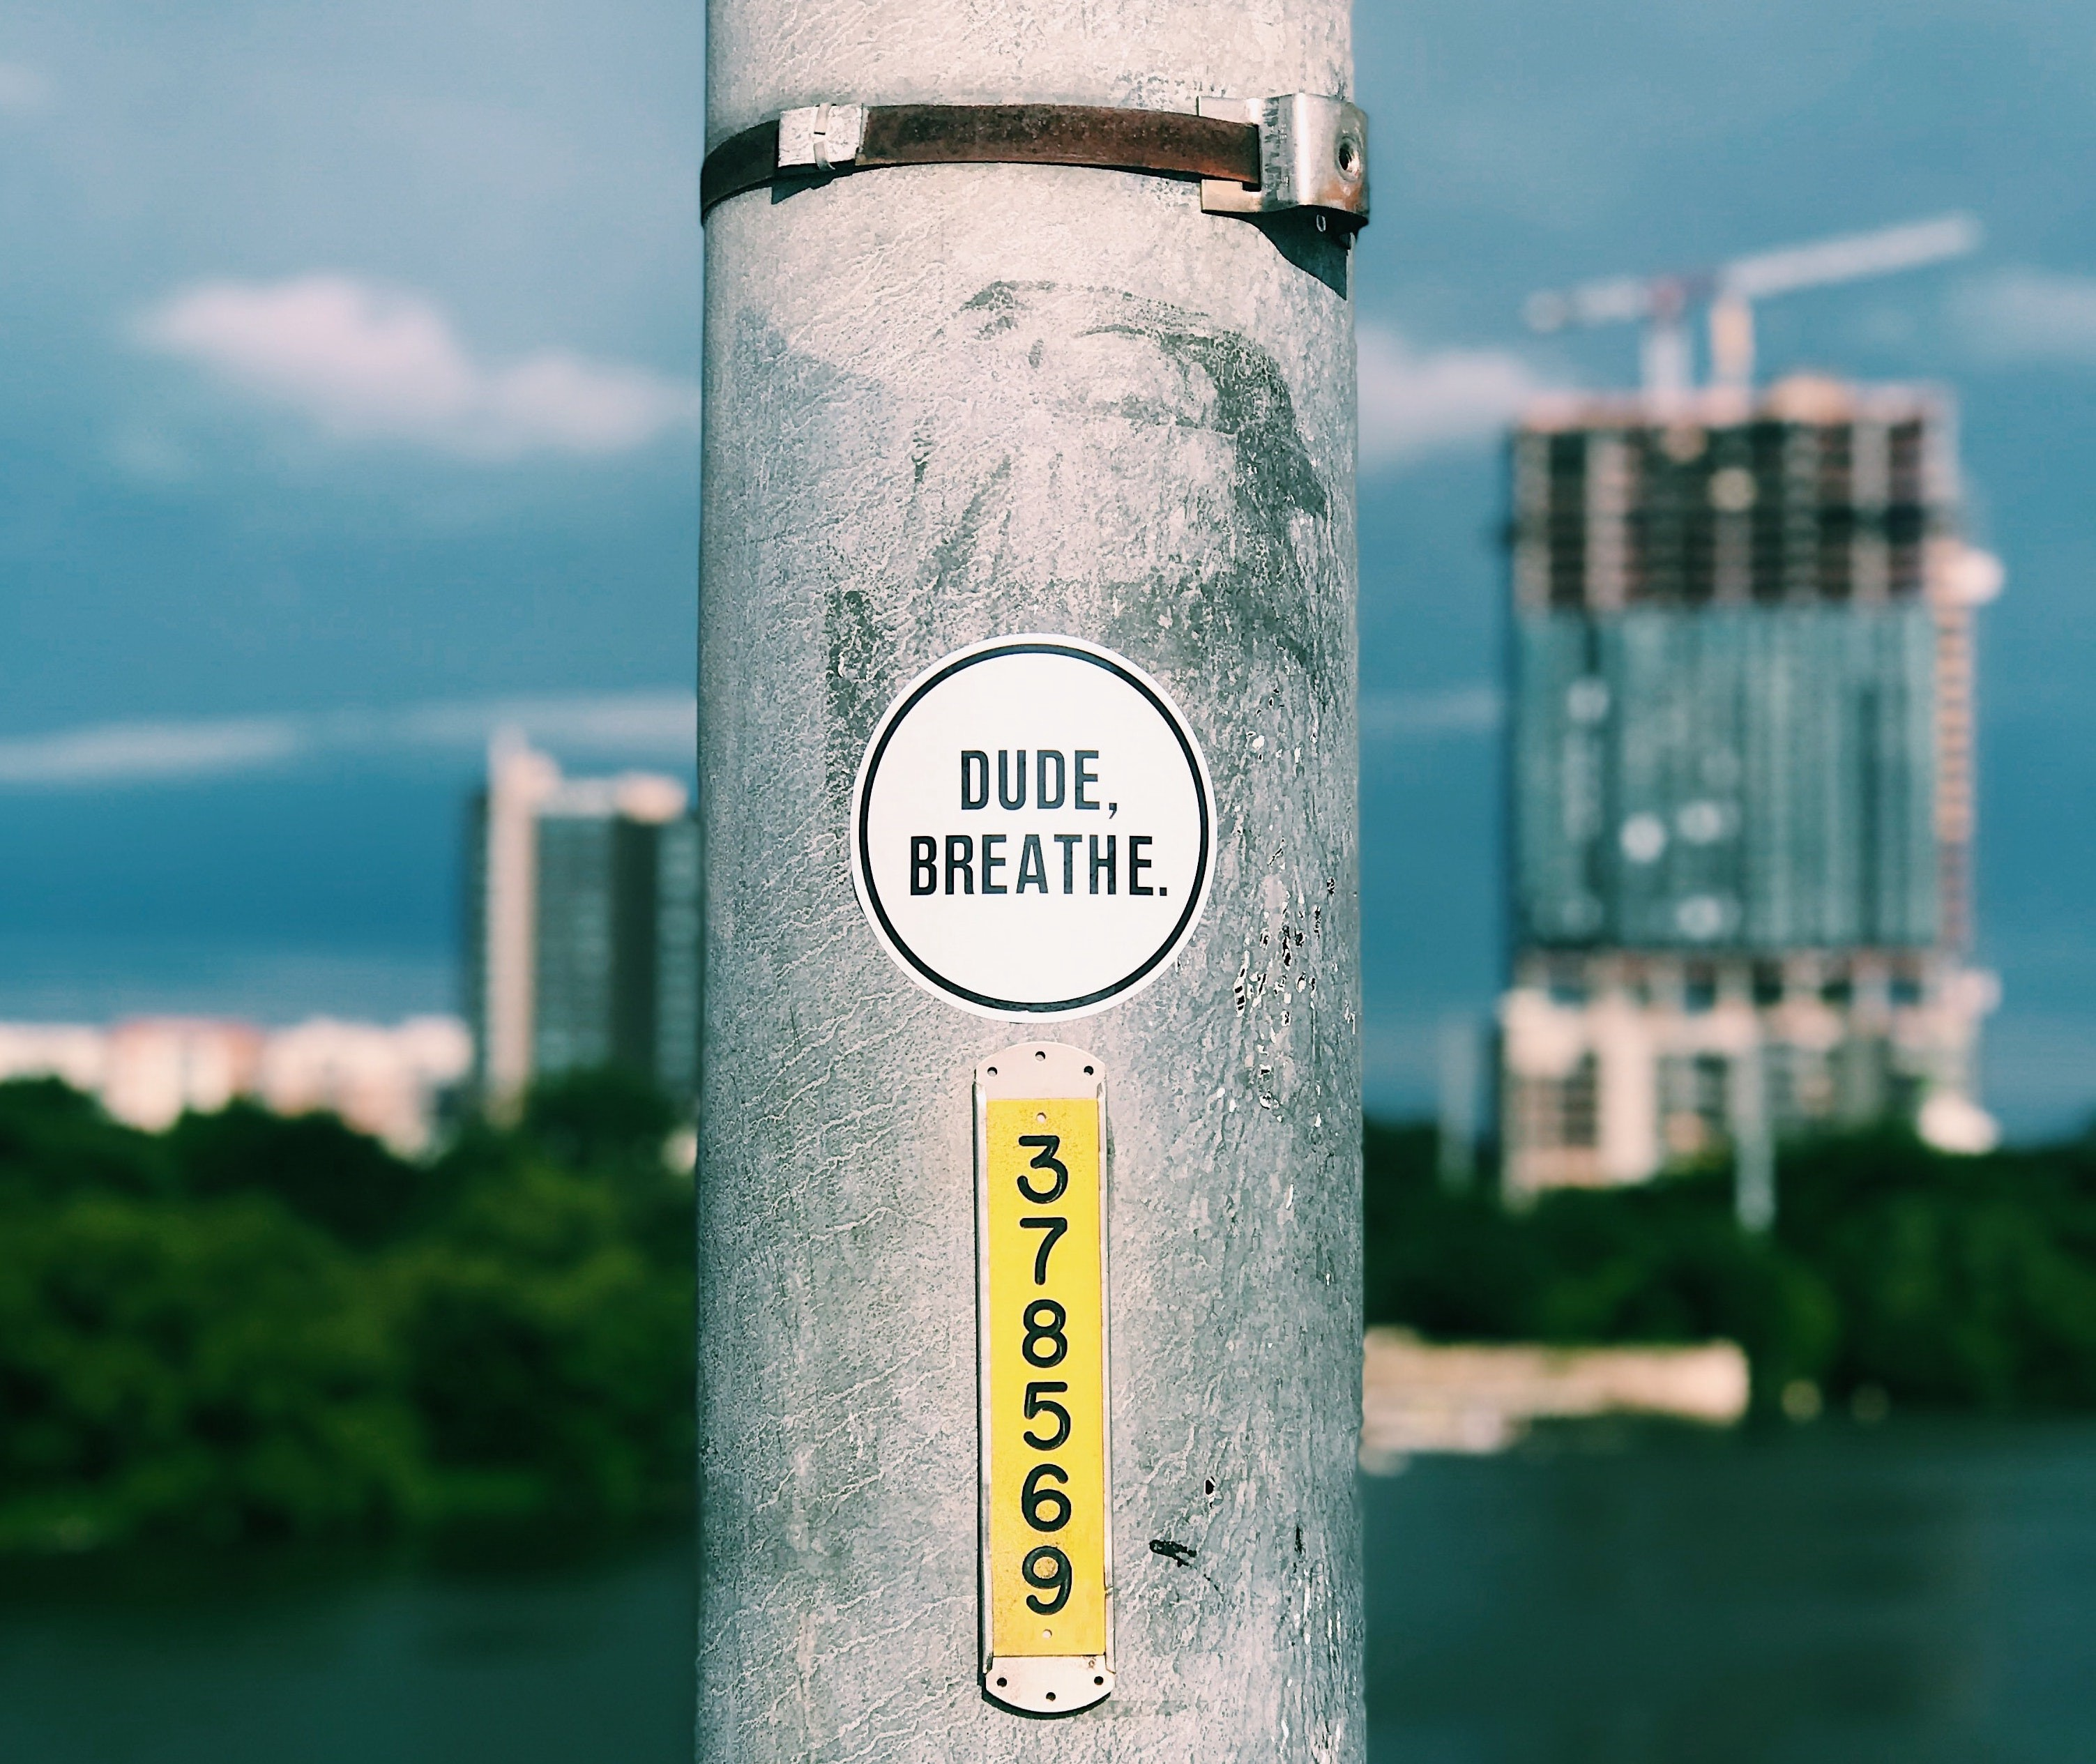 metal pole with dude, breathe sticker